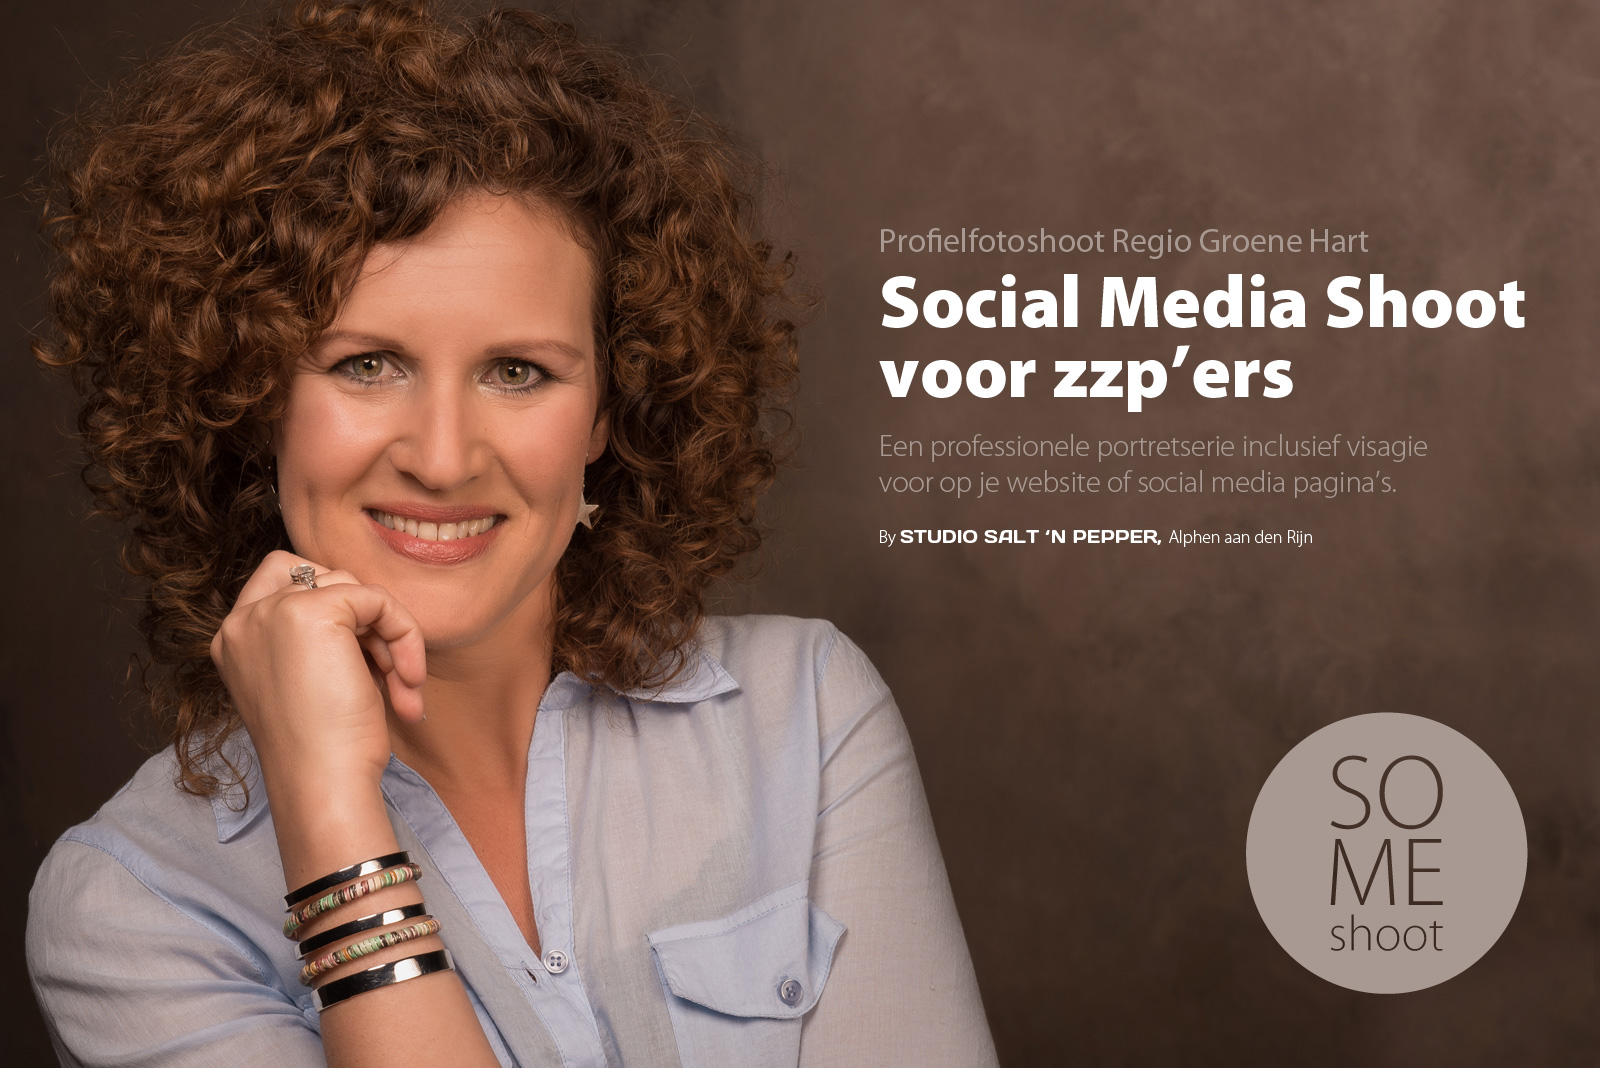 Social Media Shoot Alphen aan den Rijn